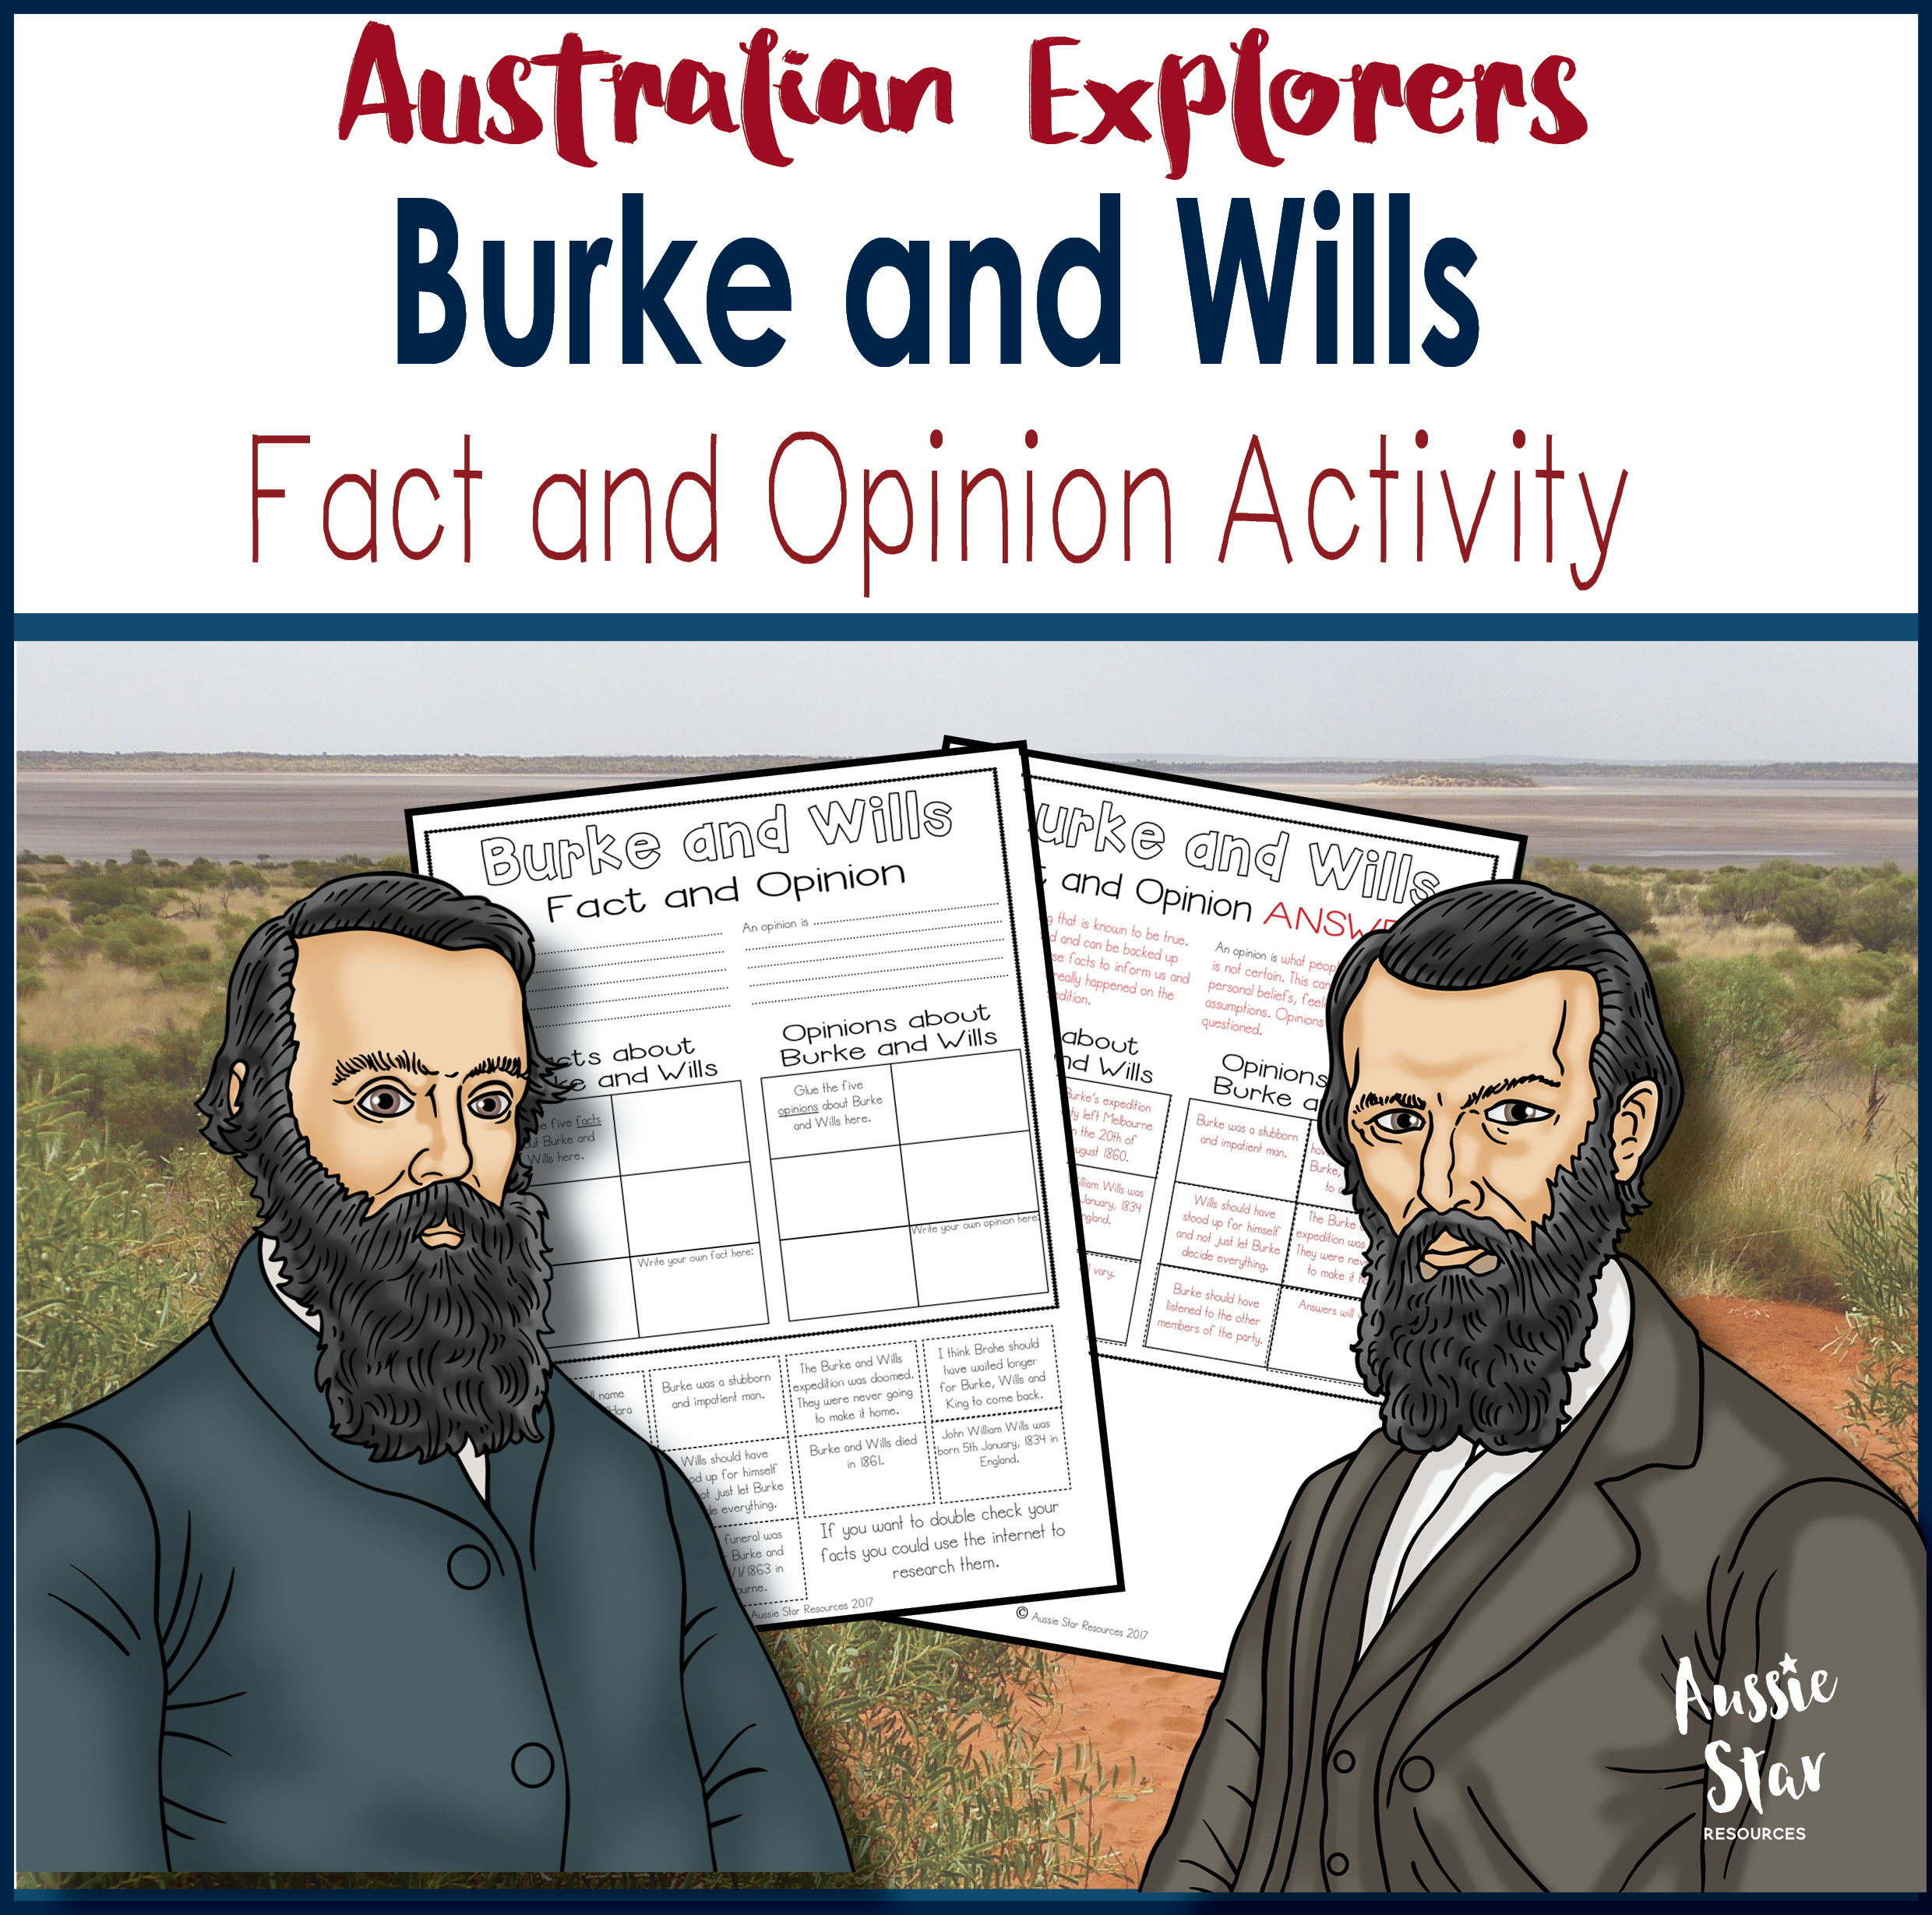 Burke and Wills fact and opinion activity cover